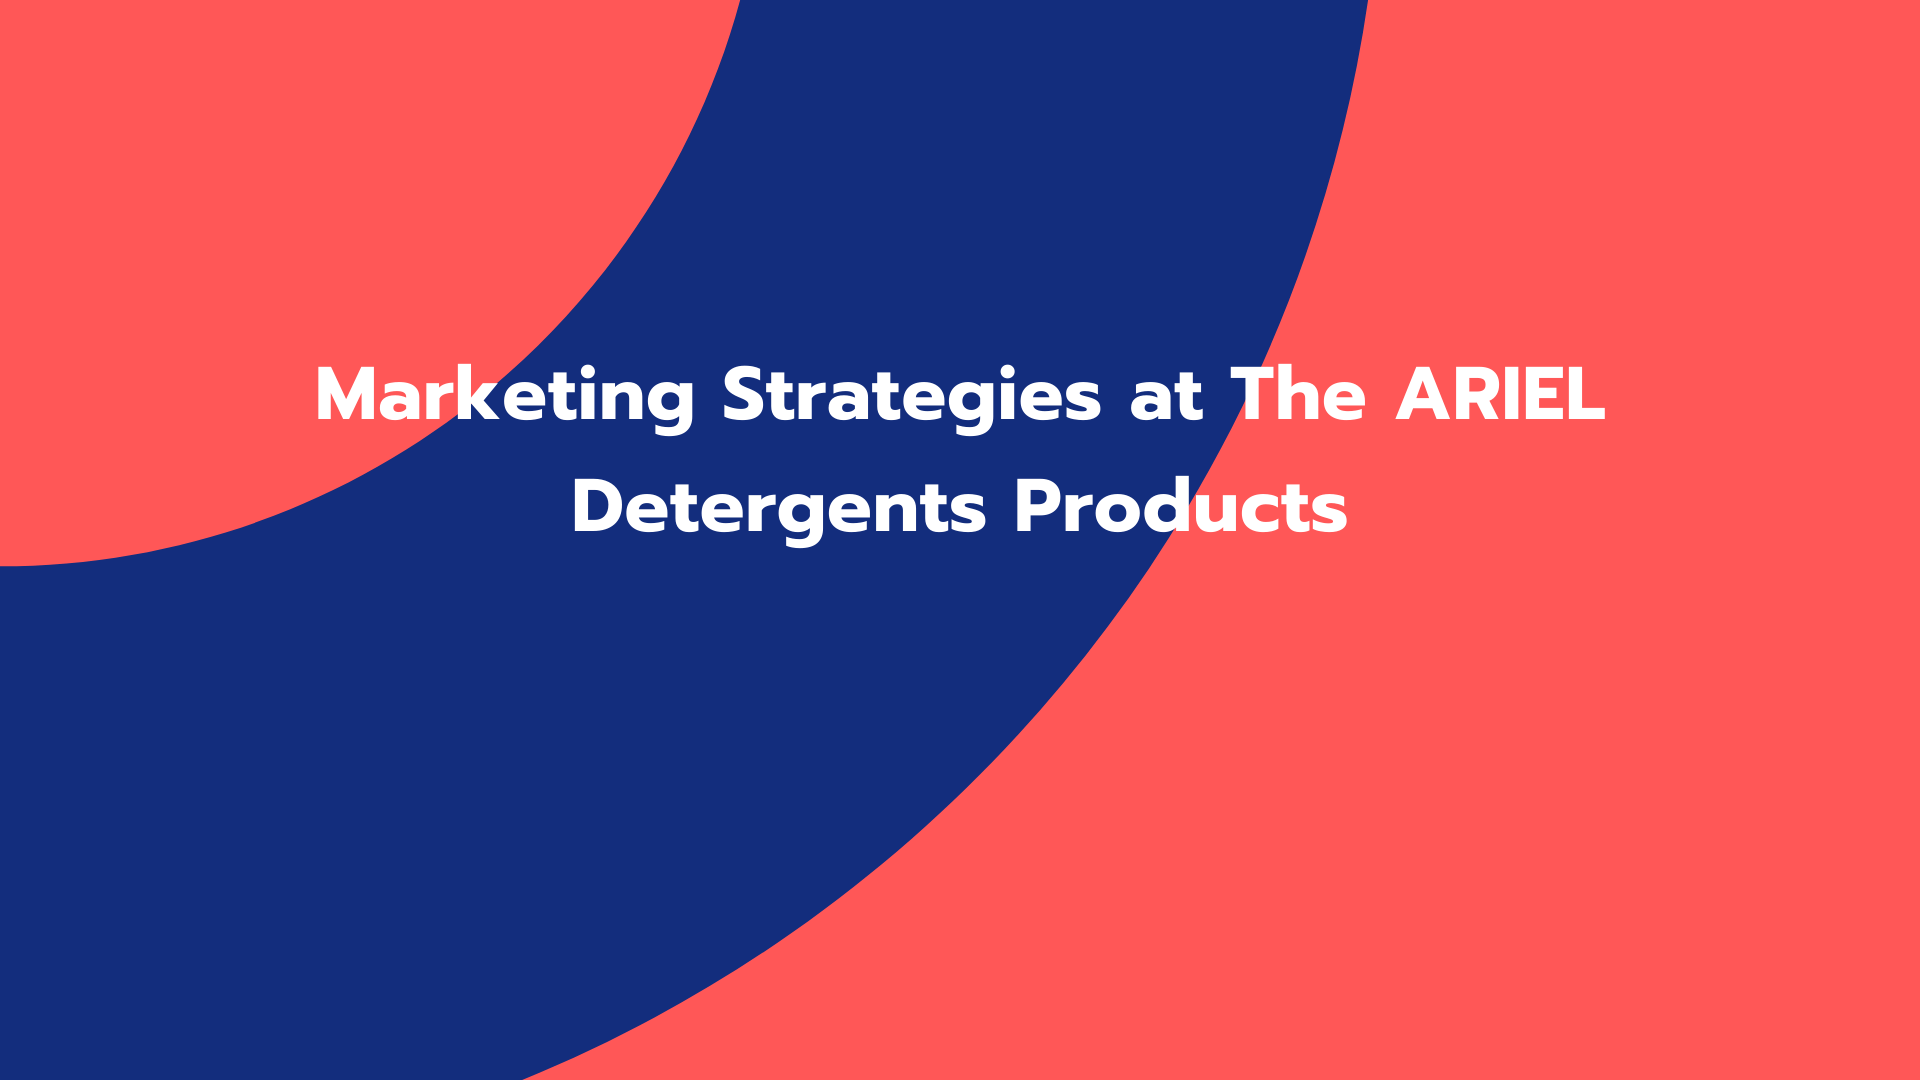 Marketing Strategies at The ARIEL Detergents Products